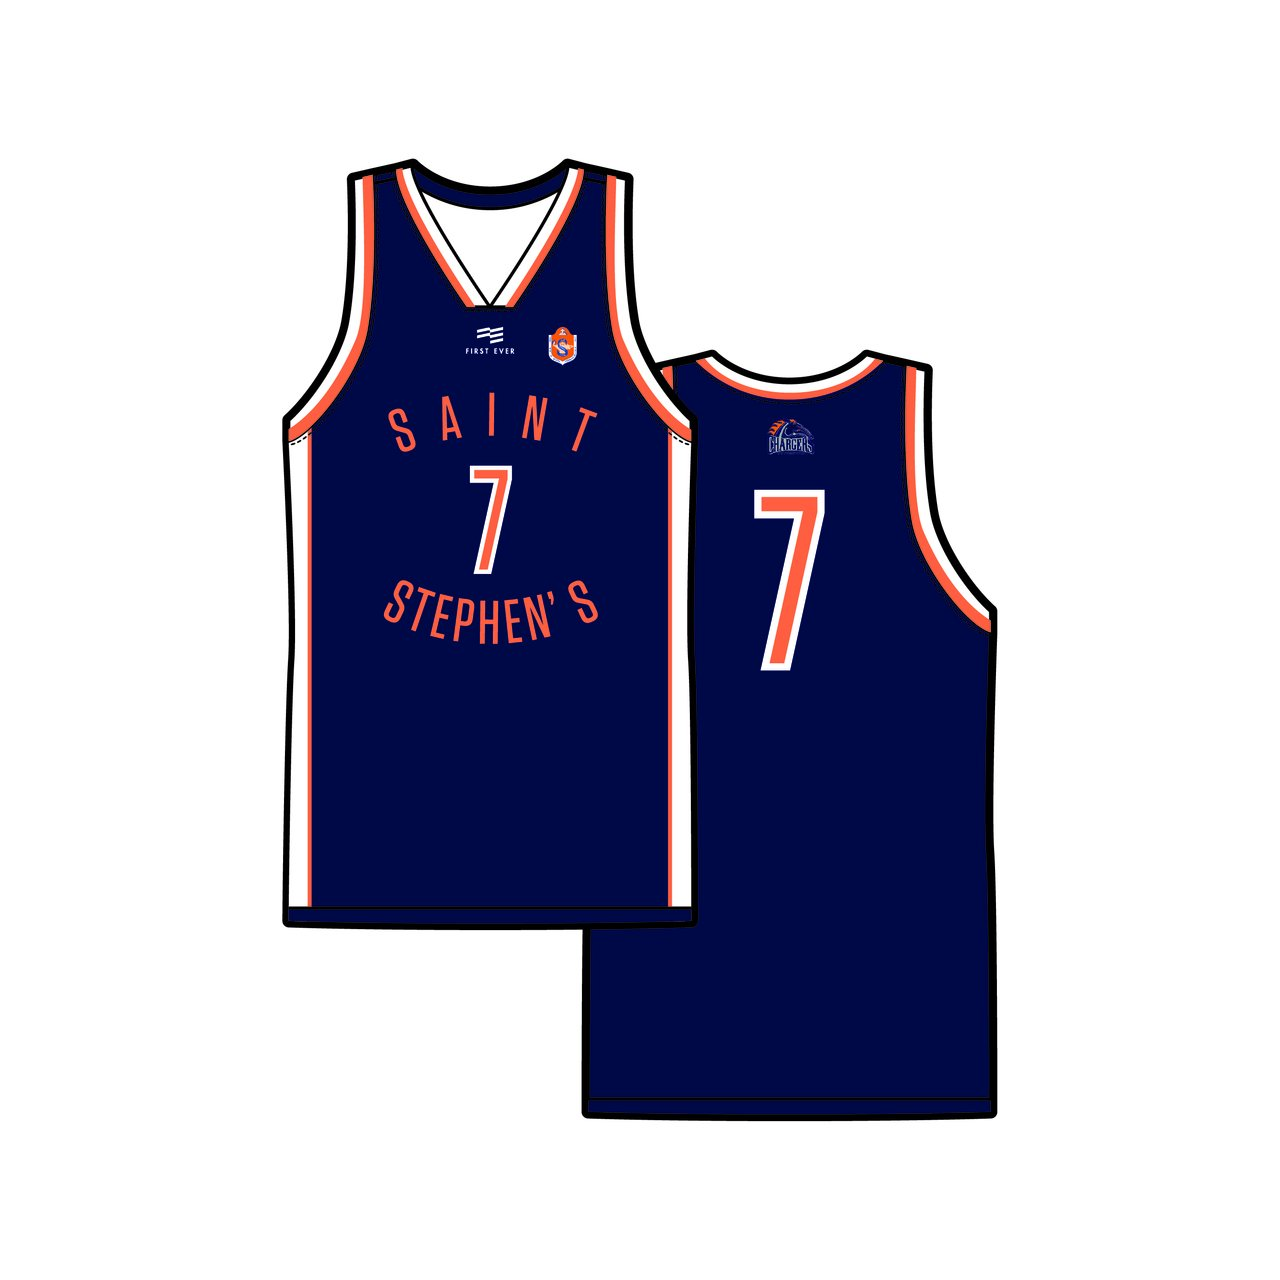 St Stephens College Reversible Playing Jersey